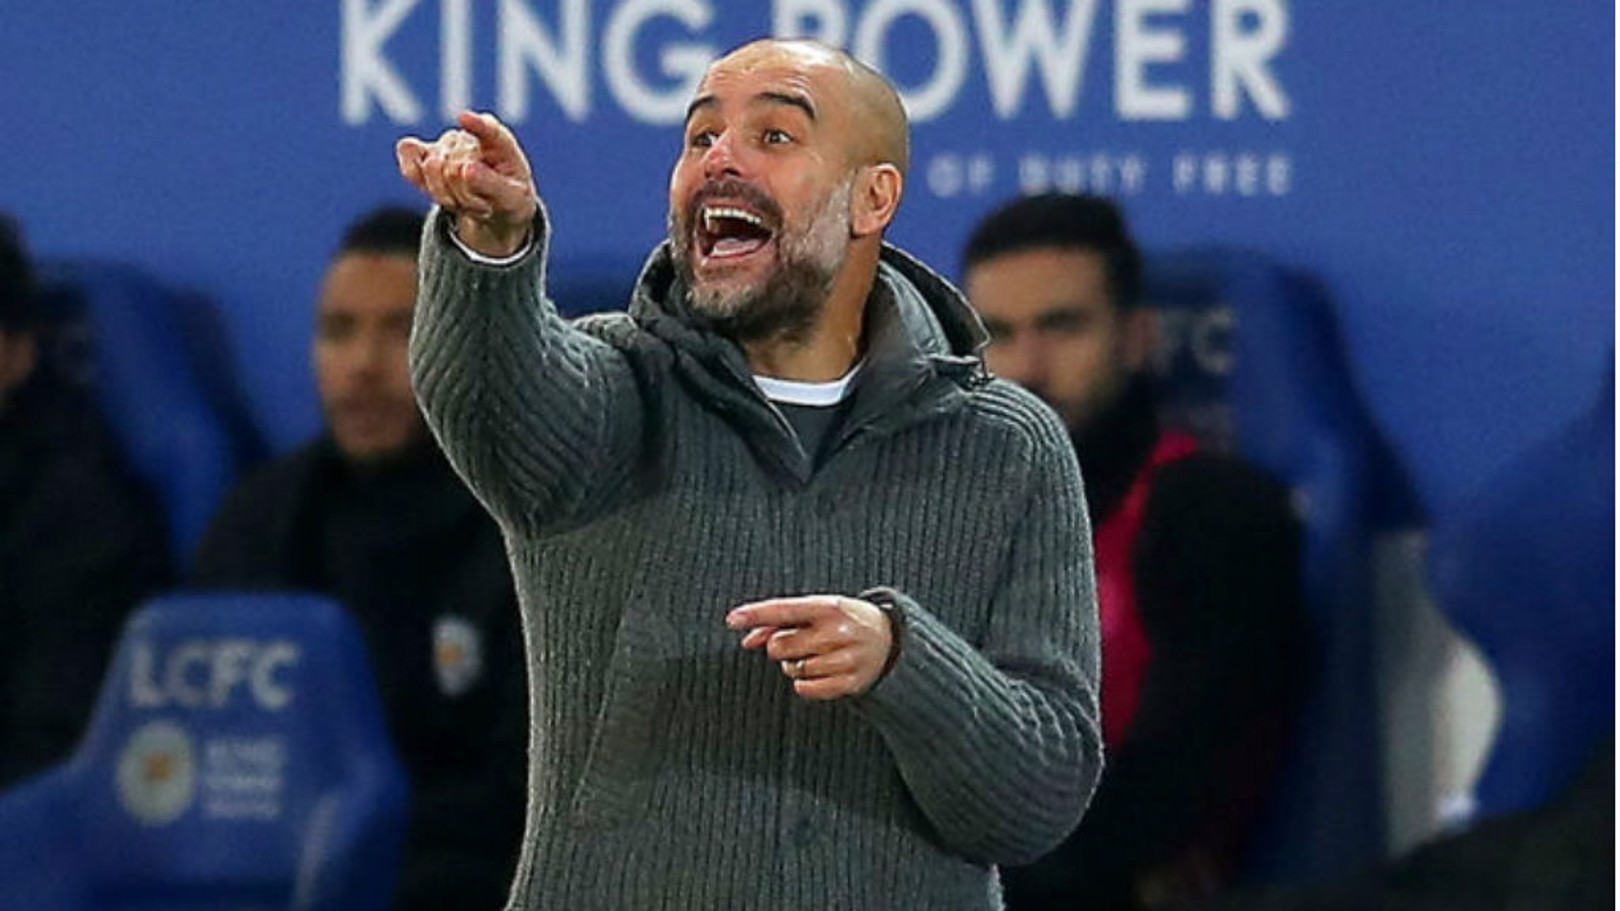 FESTIVE POINTER: Pep Guardiola passes on some intructions